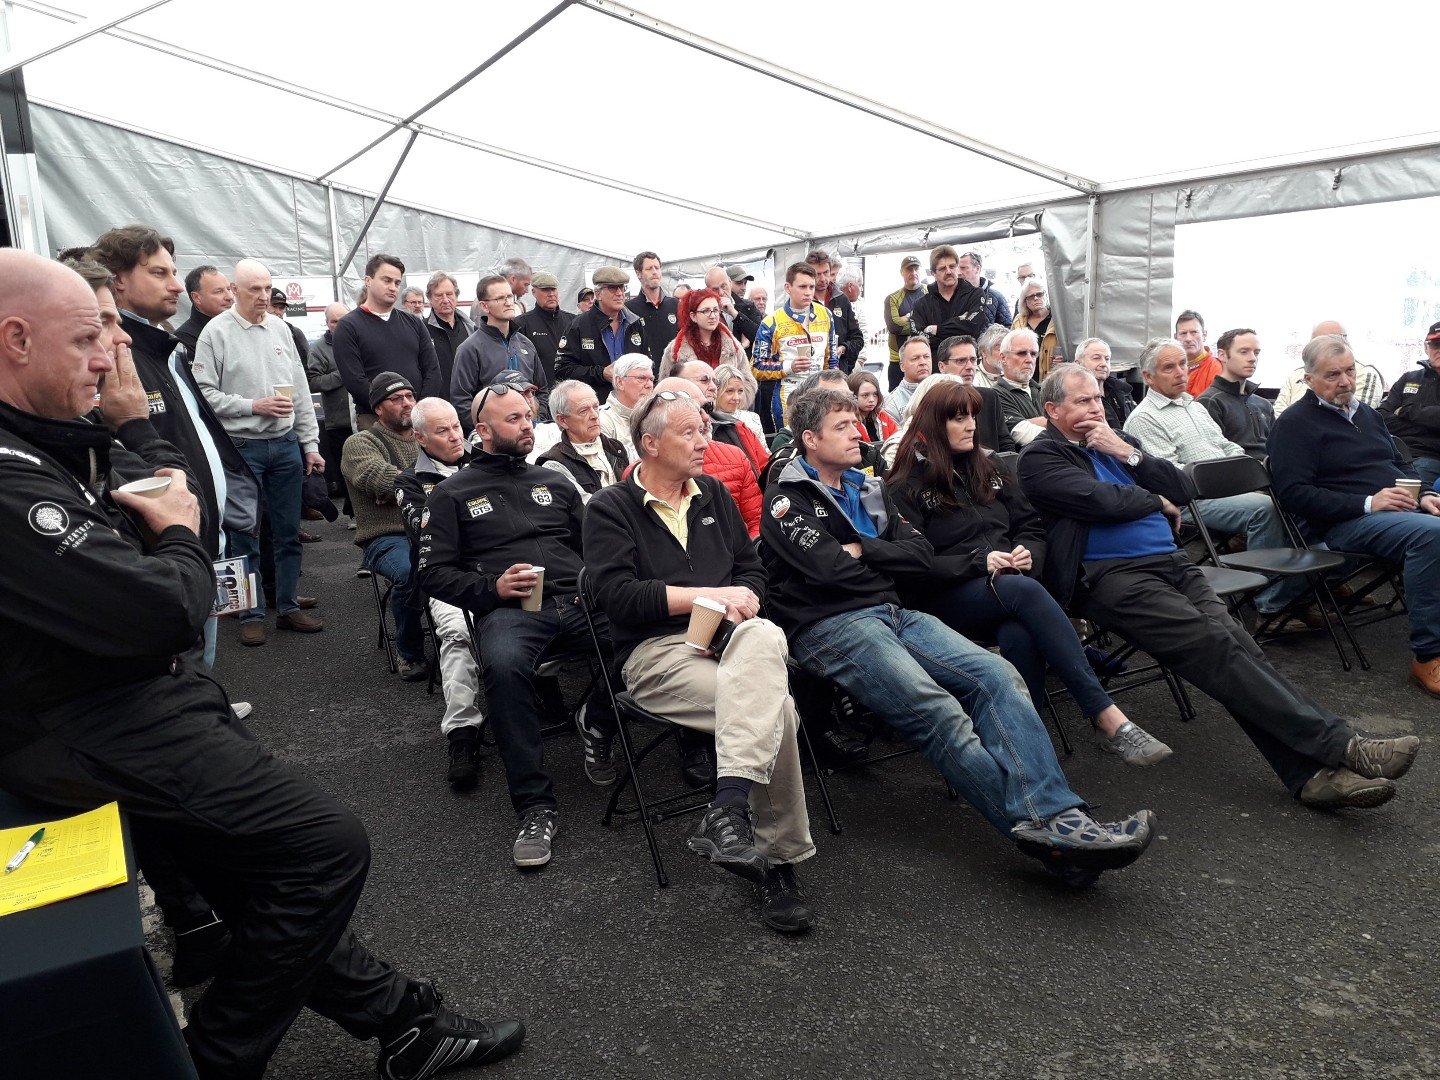 180512_Oulton_Equipe Drivers Briefing_AReed.jpg